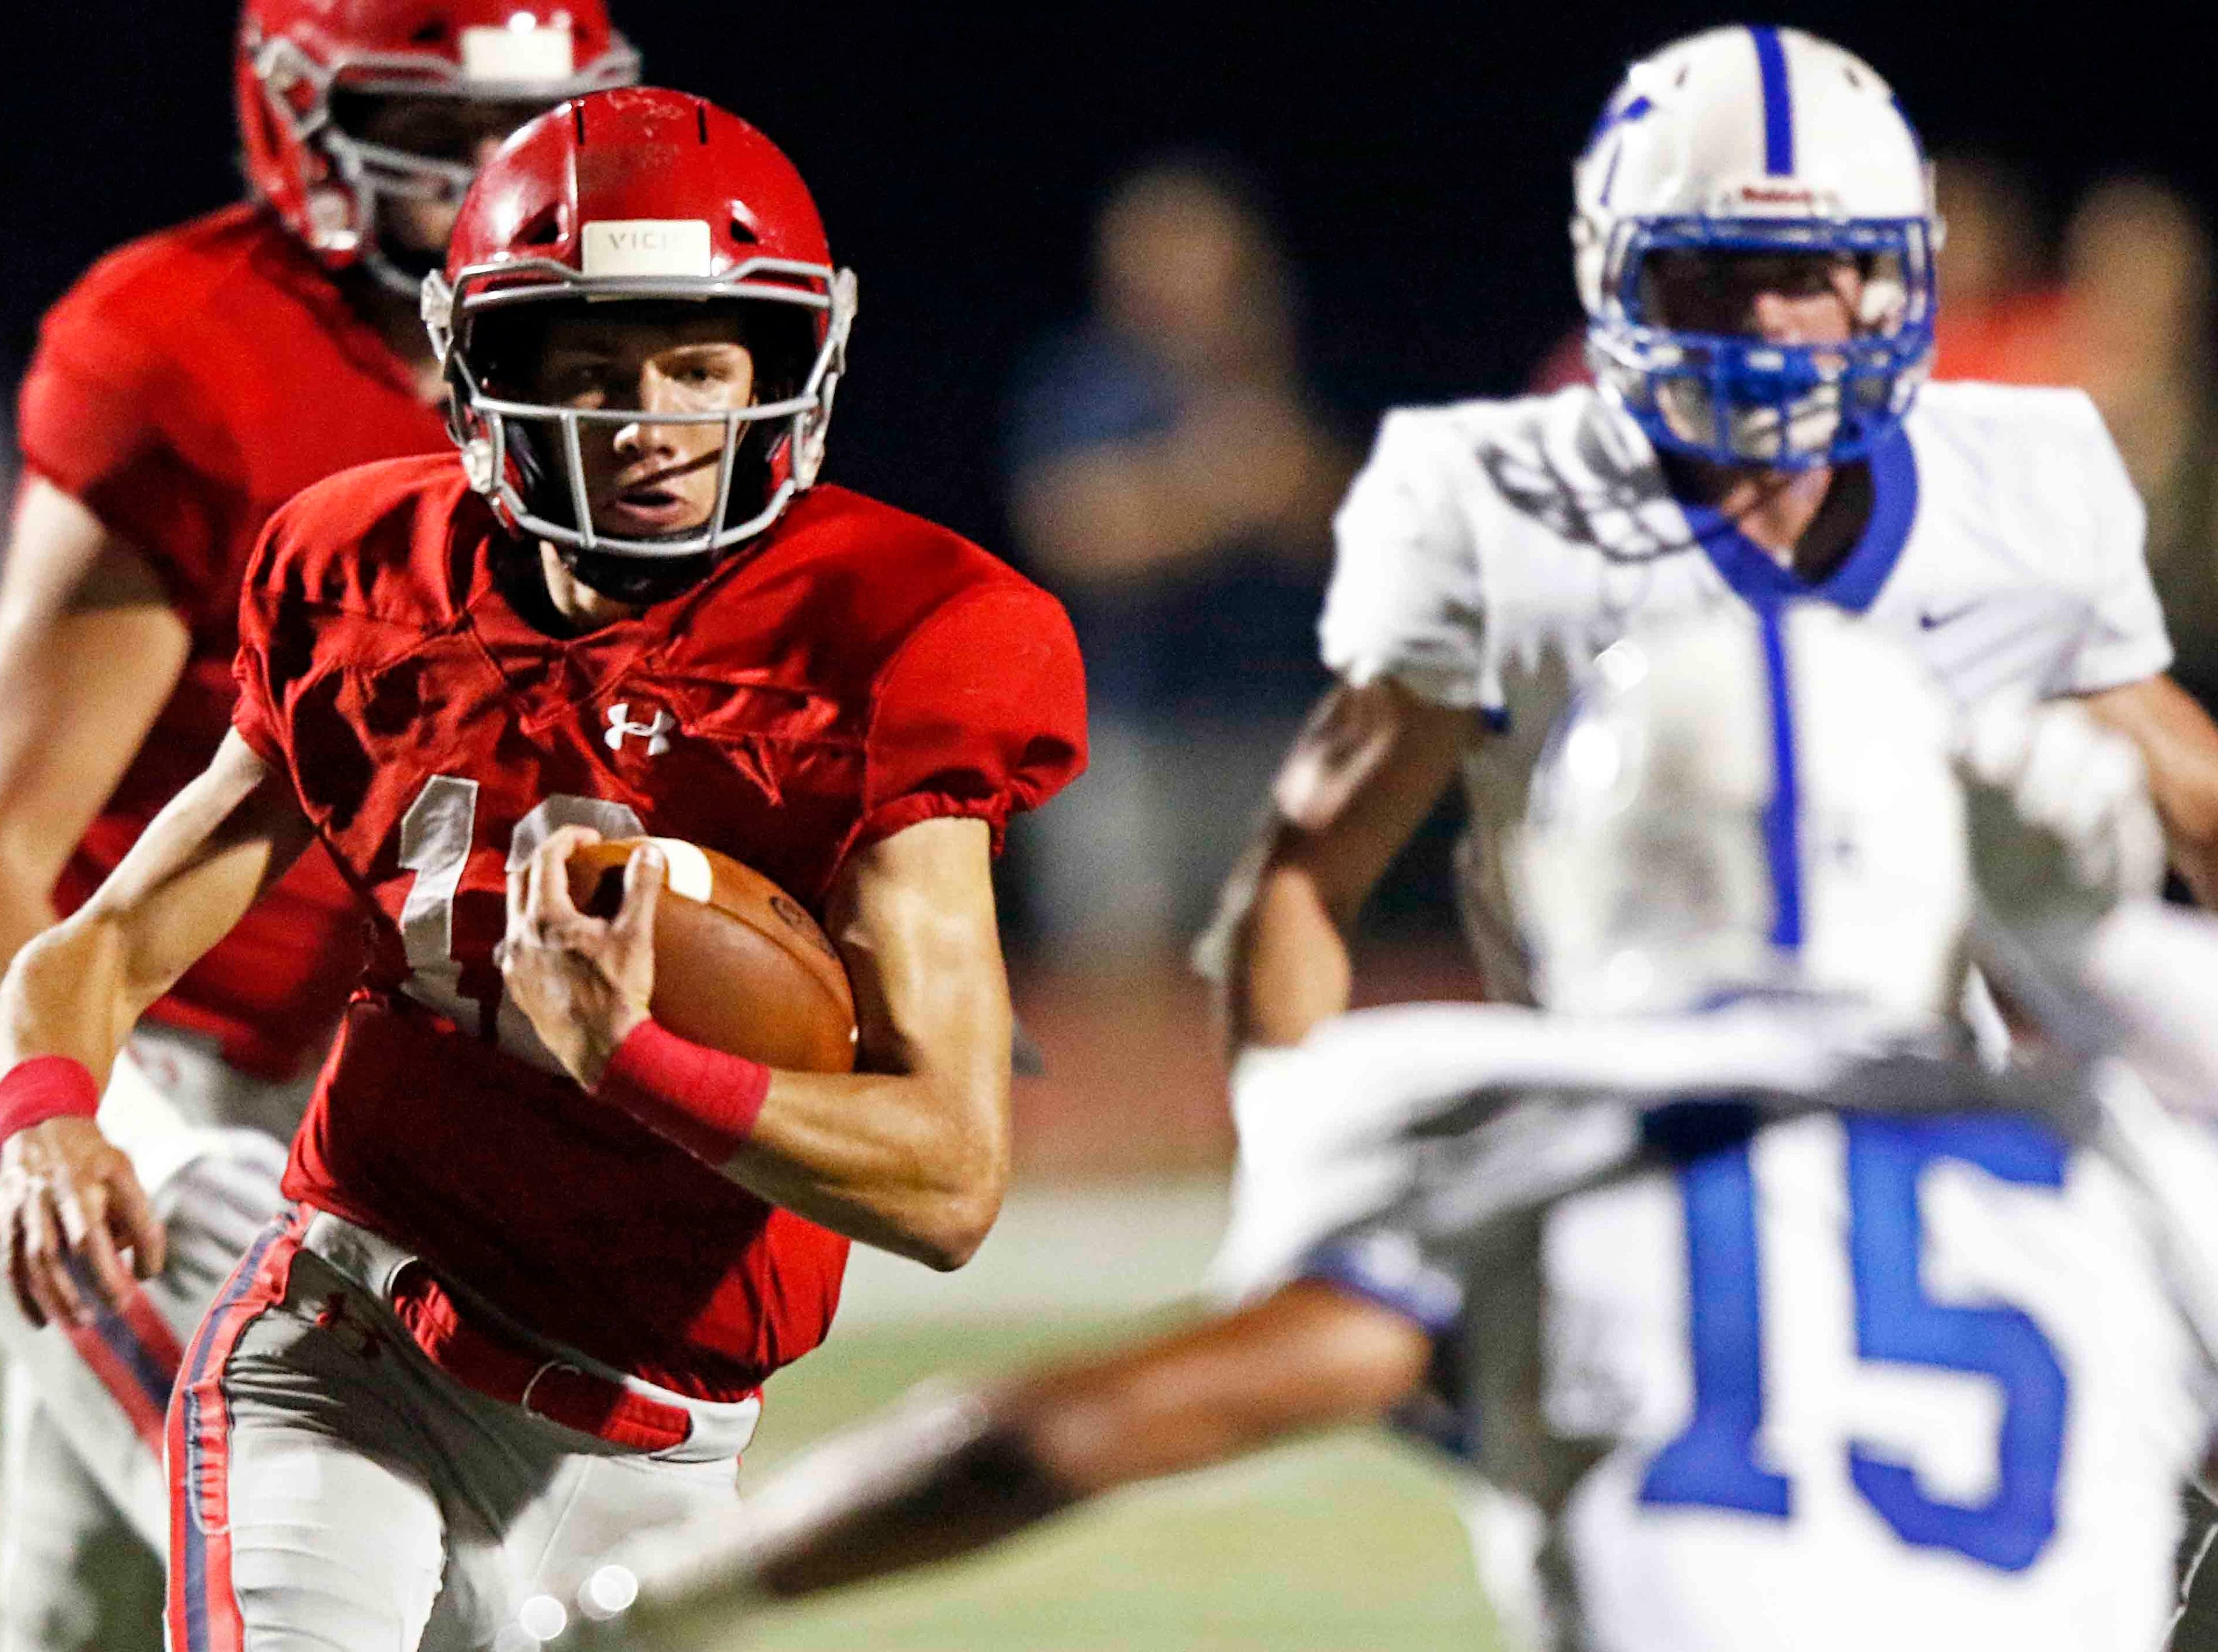 Brentwood Academy's Wade Williams runs for a touchdown during their game against McCallie Friday, Oct. 5, 2018, in Nashville, Tenn.